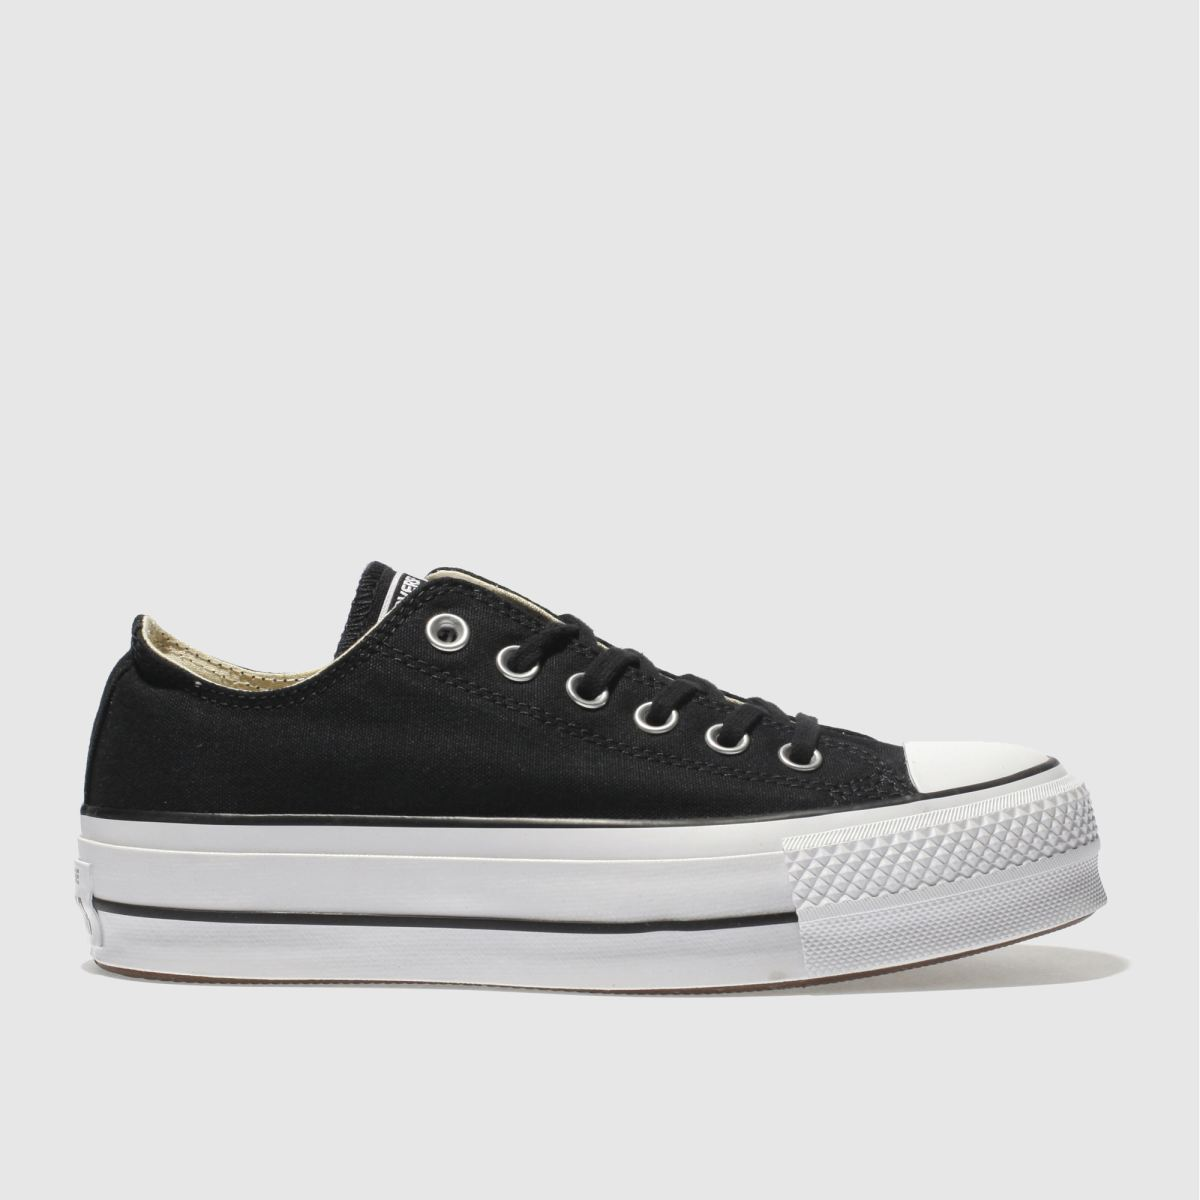 Converse Black & White Ox Lift Platform Trainers